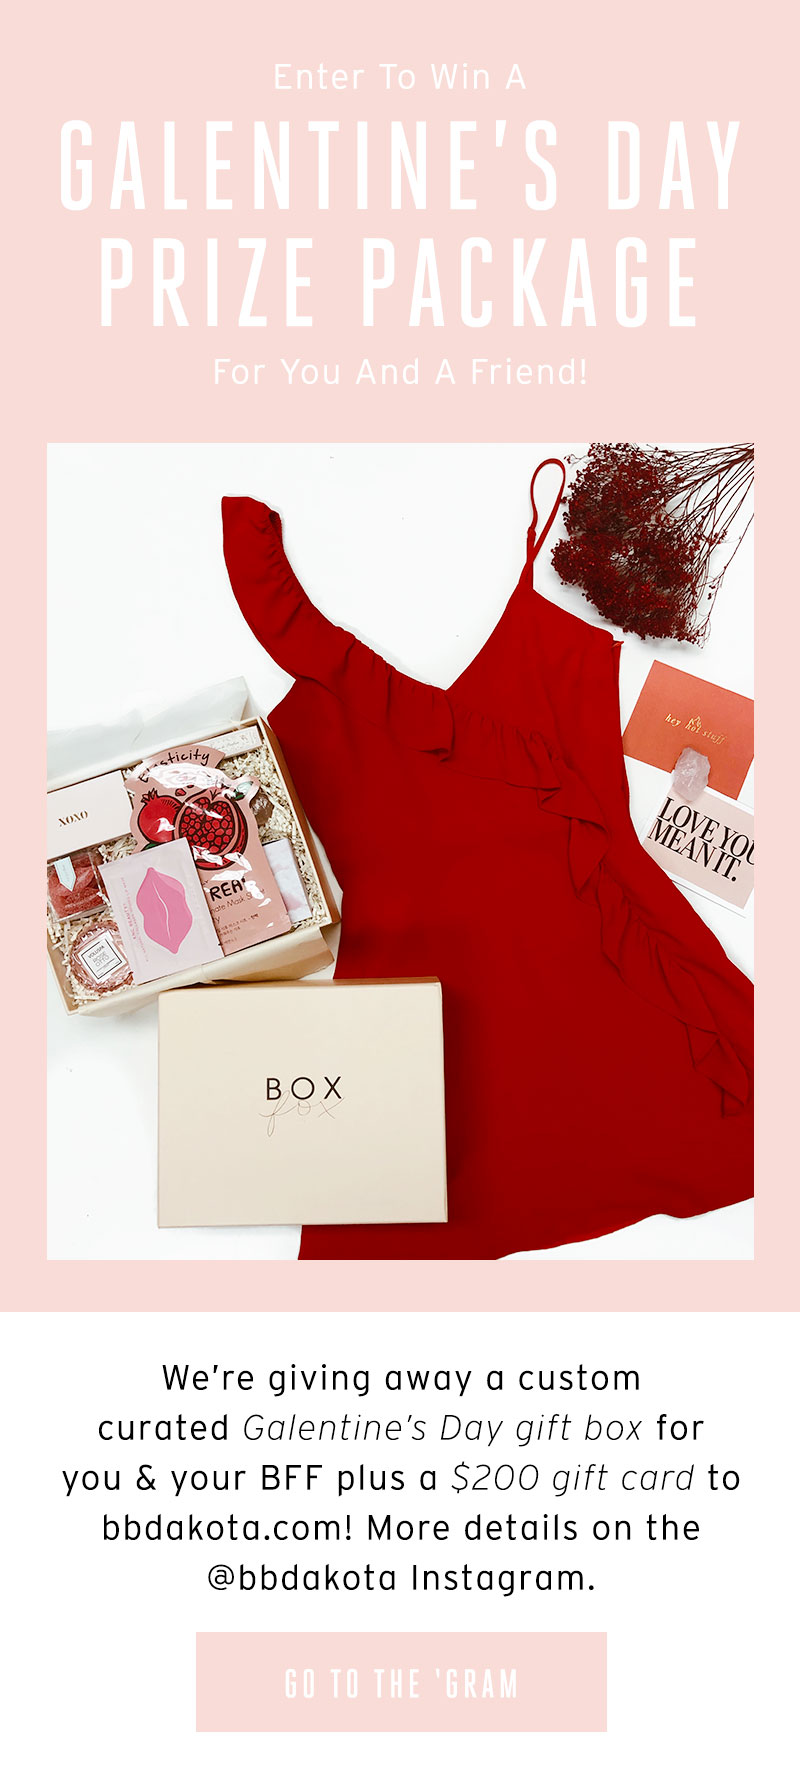 Enter to win a Galentine's Day Prize Package for you and a friend! Go to the Gram